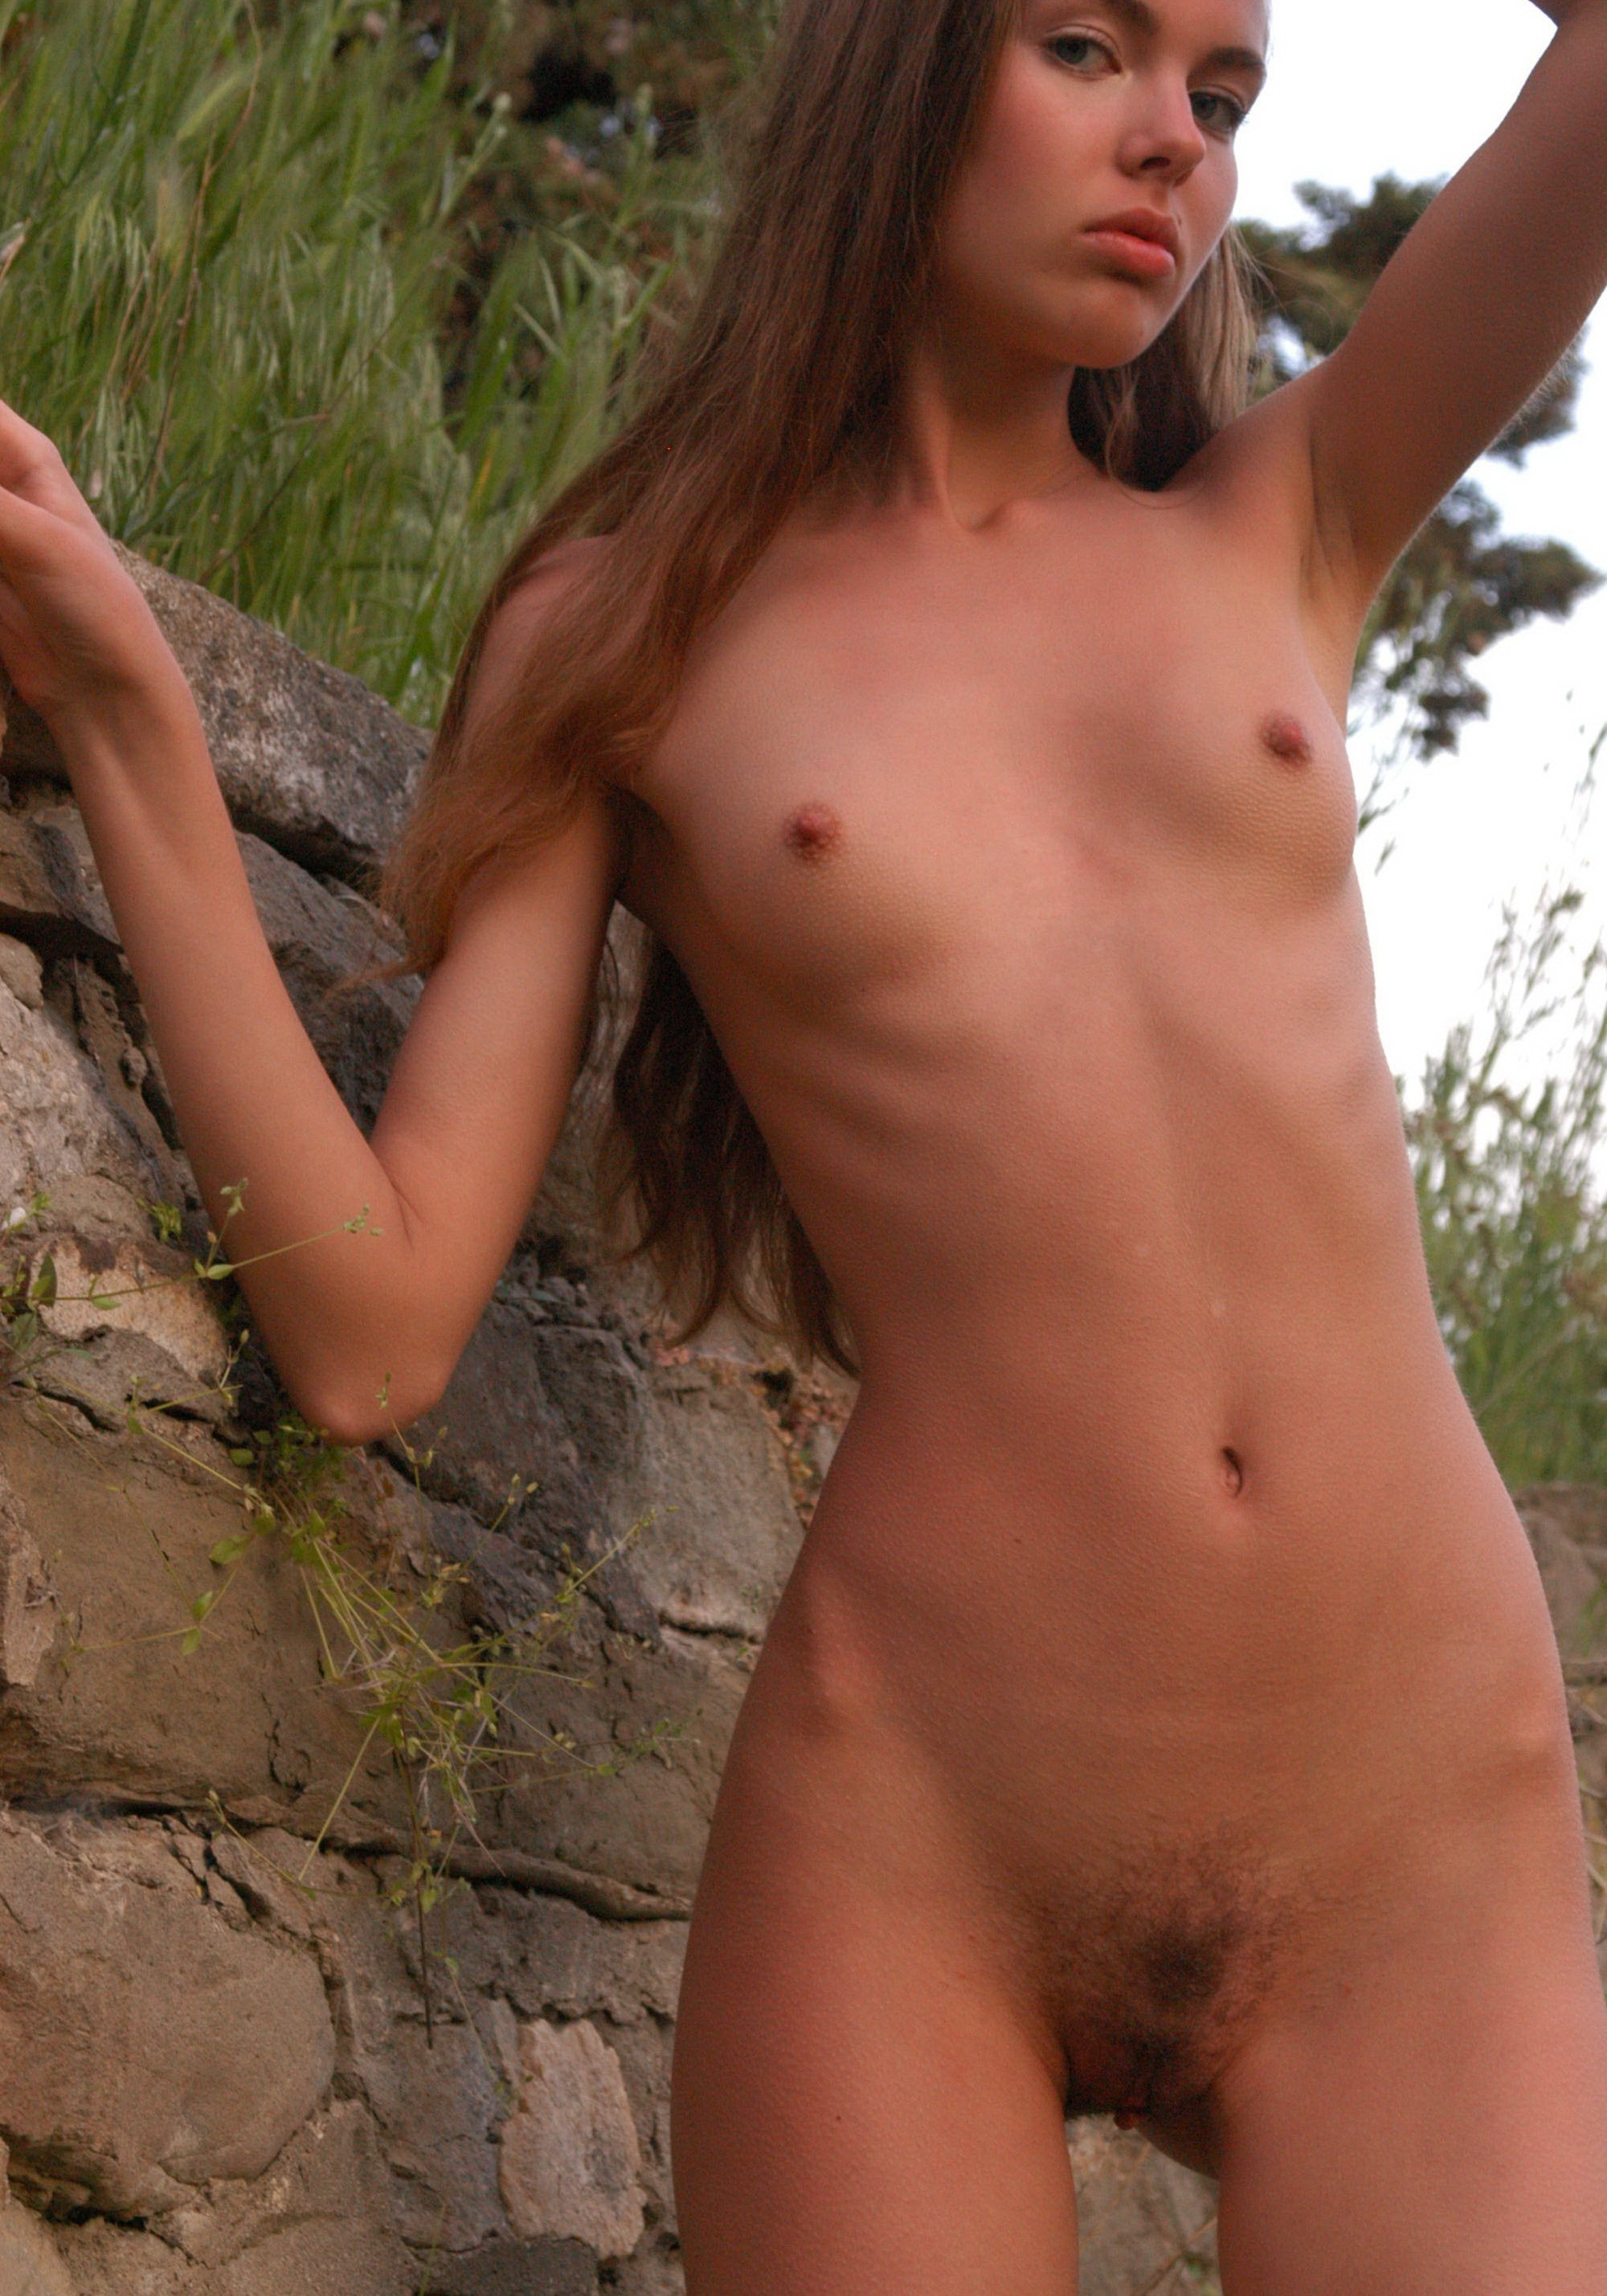 wendy makkena naked pictures